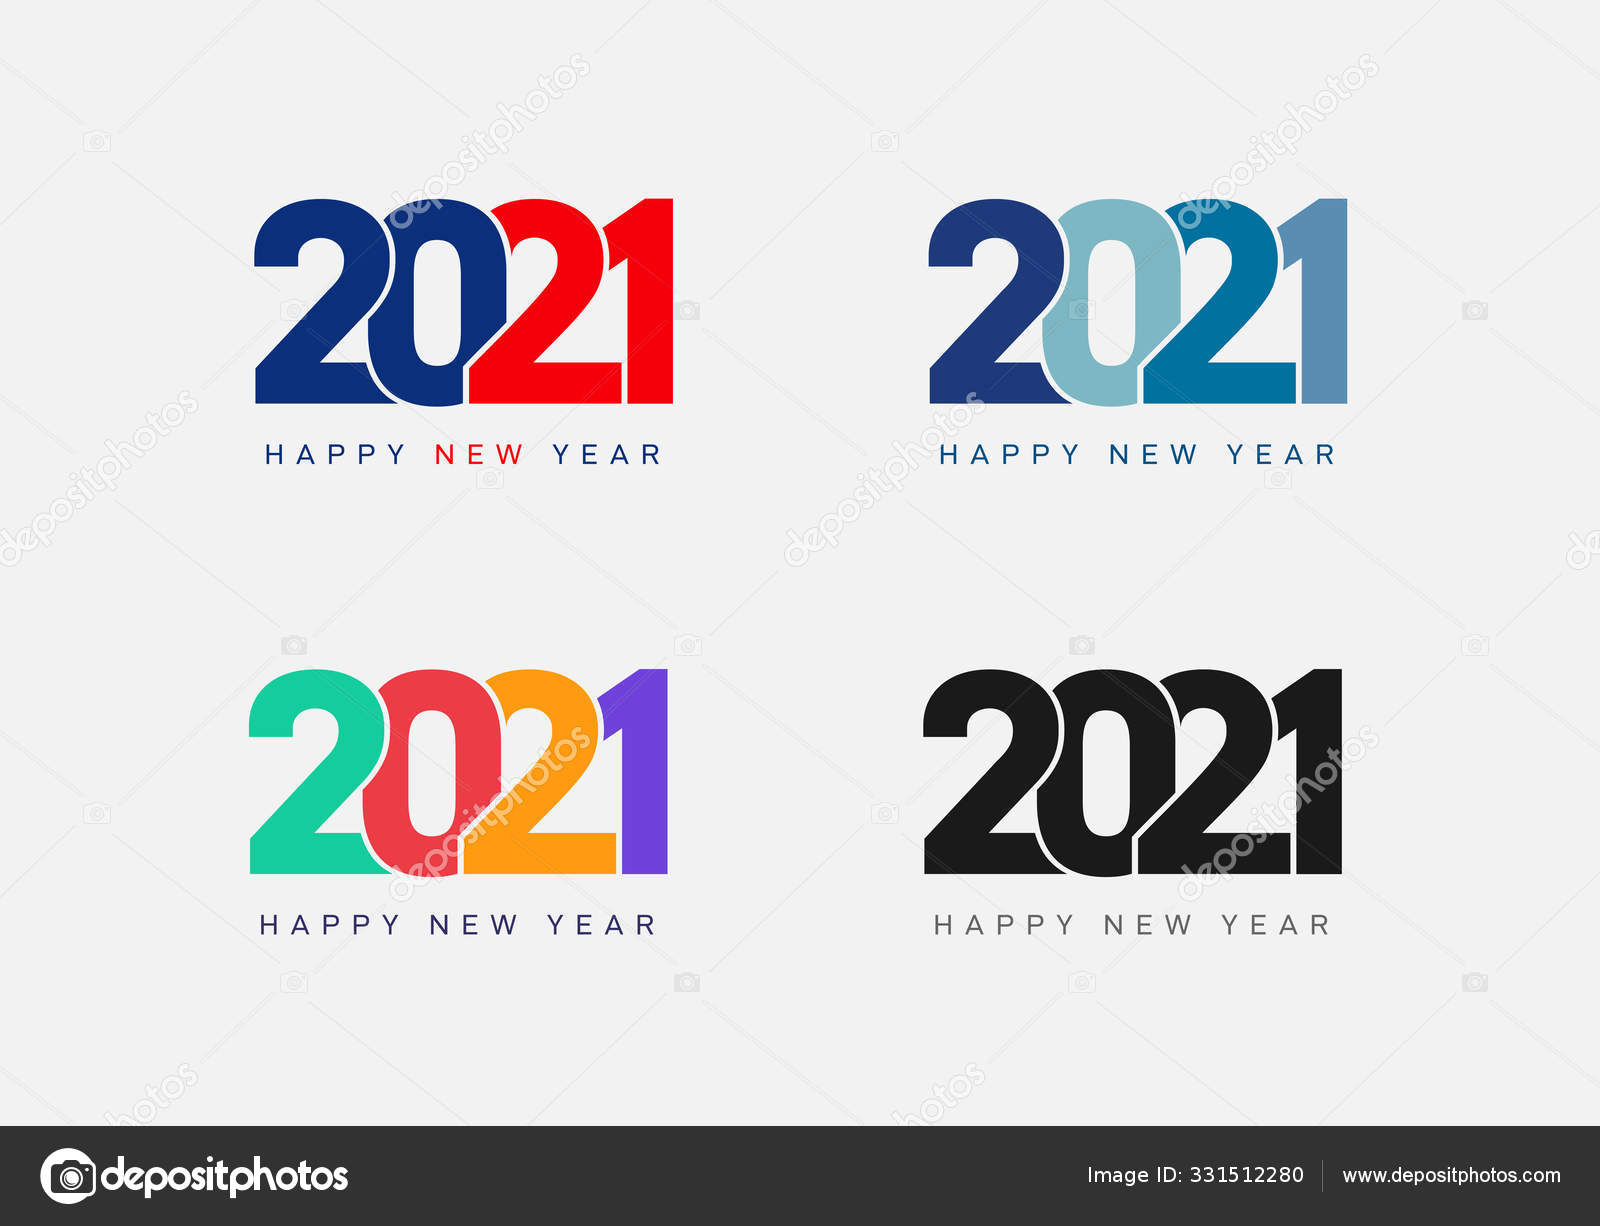 Happy New Year 2021 Stock Vectors Royalty Free Happy New Year 2021 Illustrations Depositphotos